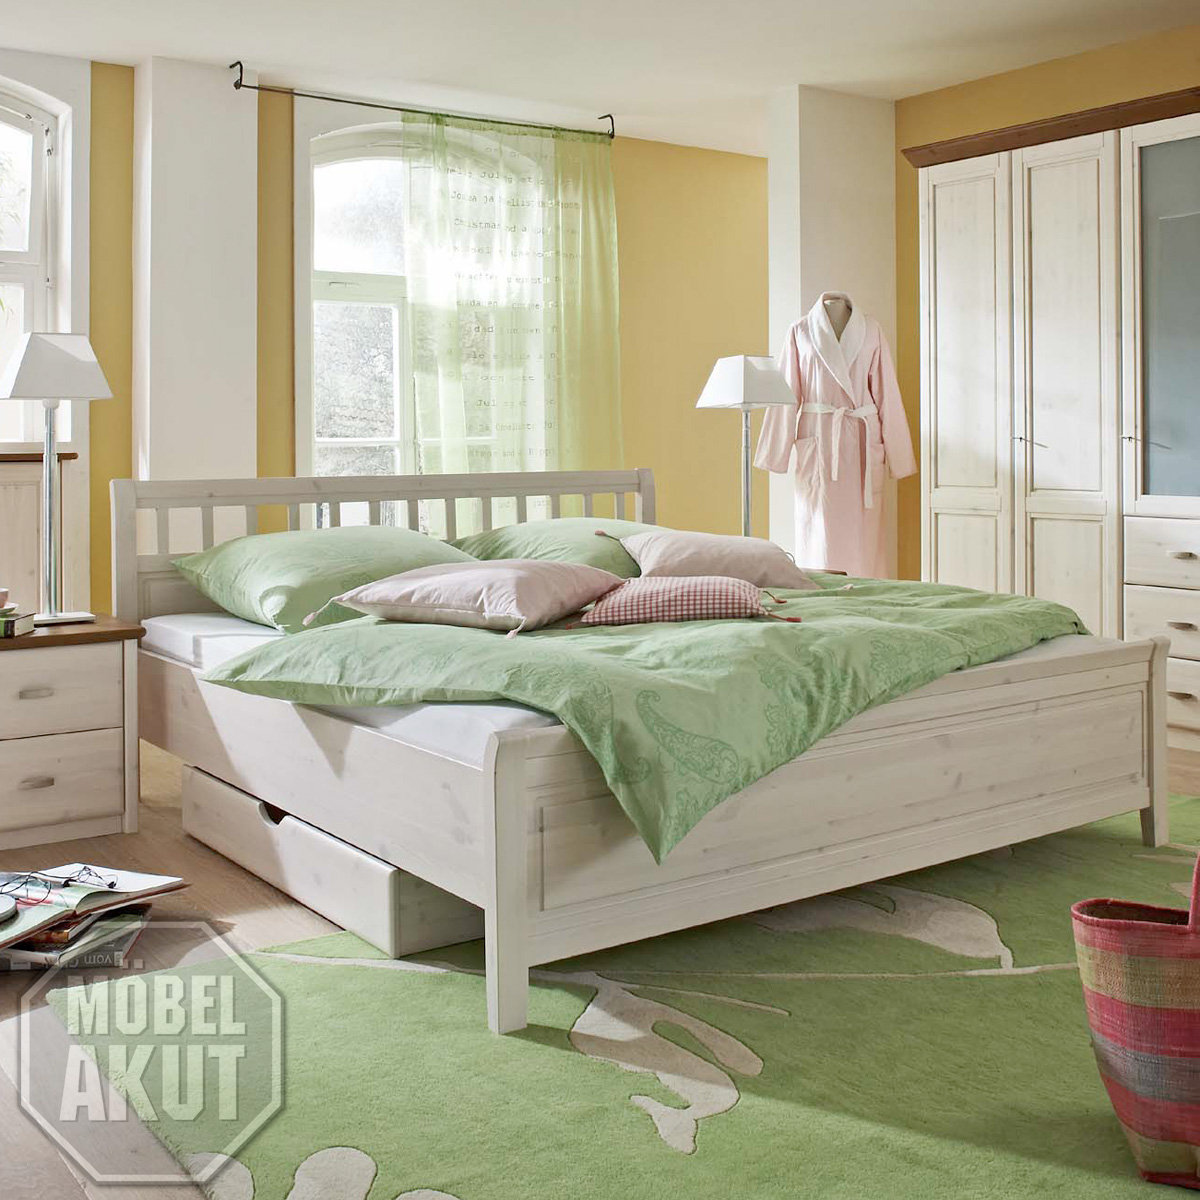 bett soeren sprossenbett doppelbett in kiefer massiv wei 160x200 ebay. Black Bedroom Furniture Sets. Home Design Ideas